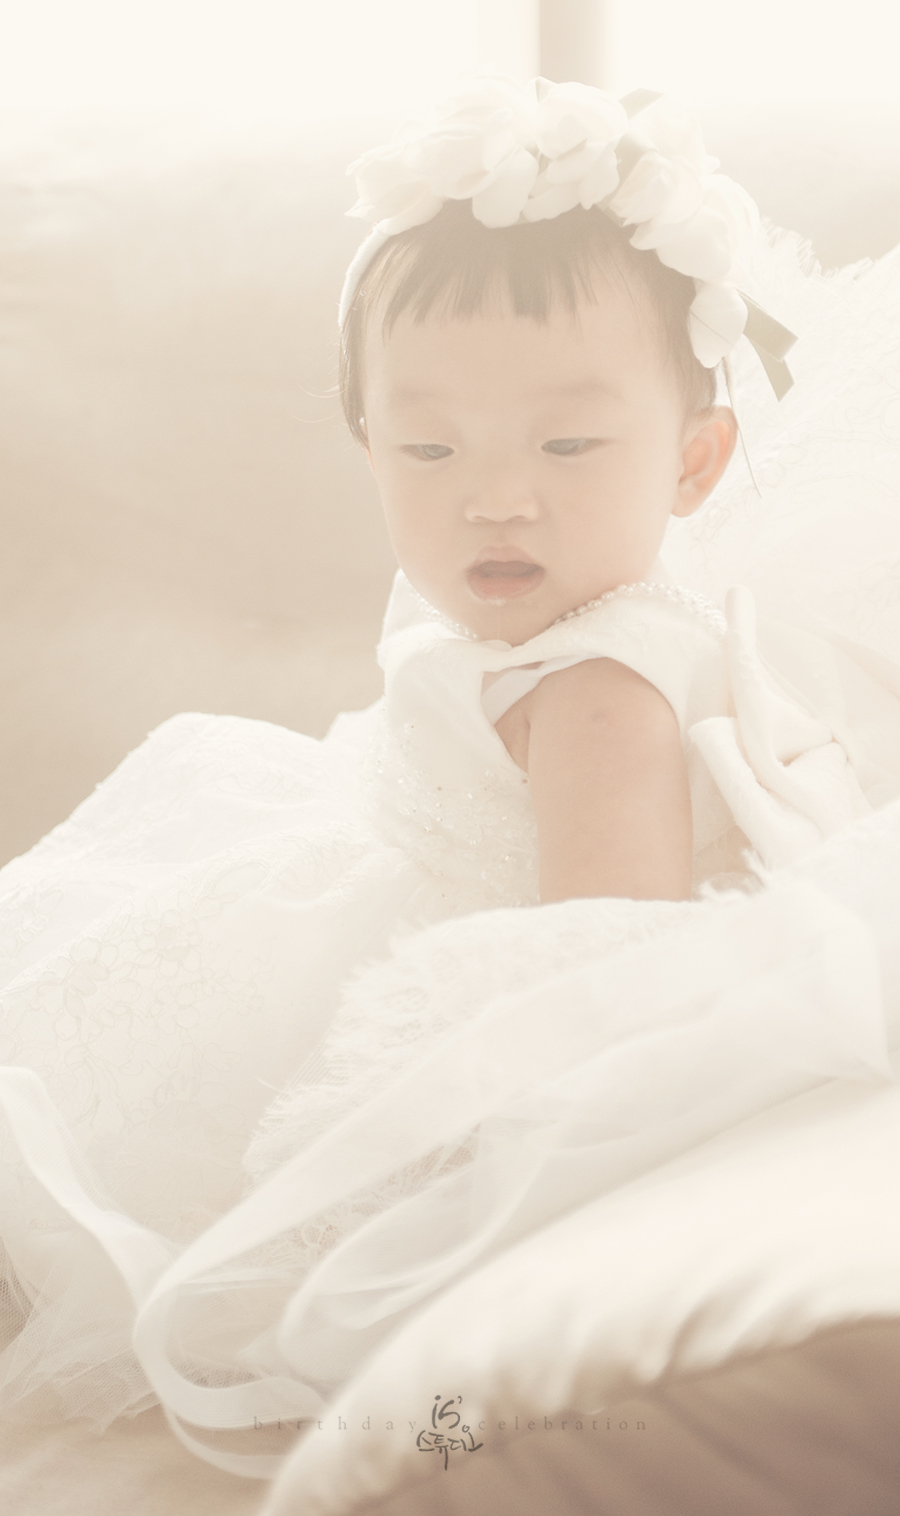 YJ 첫번째 생일  first birthday story.